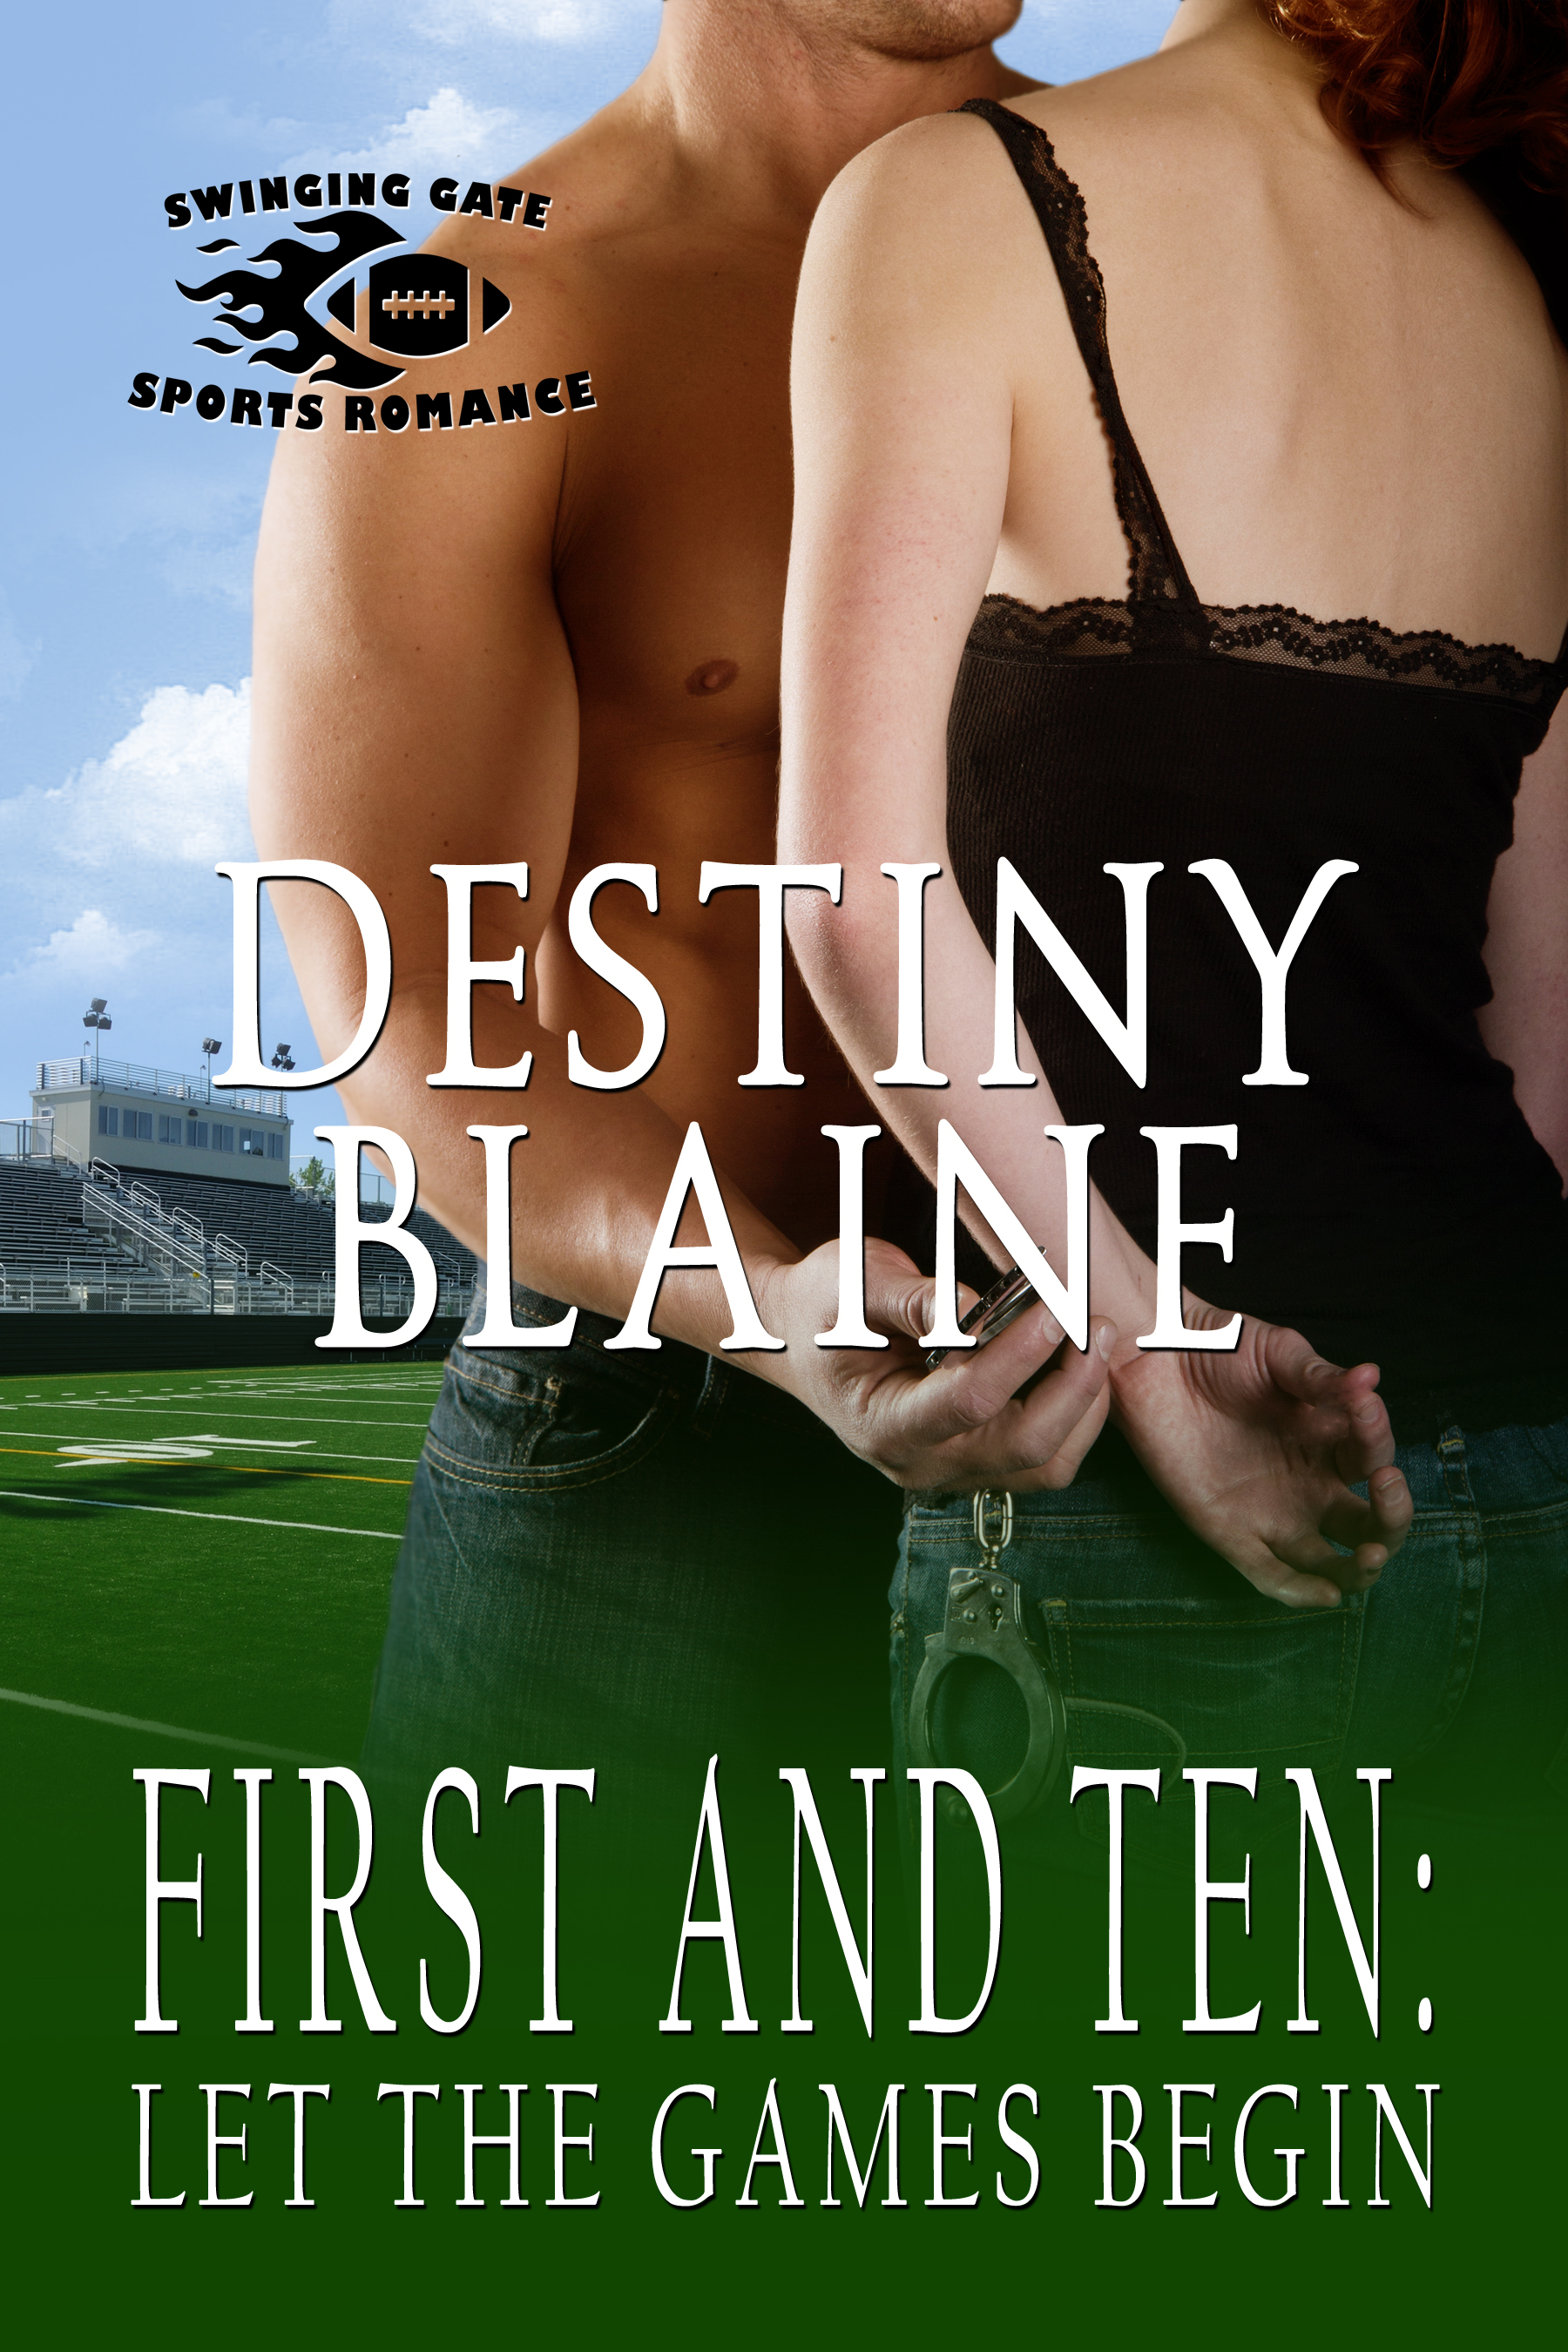 Destiny Blaine says: Let the games begin!